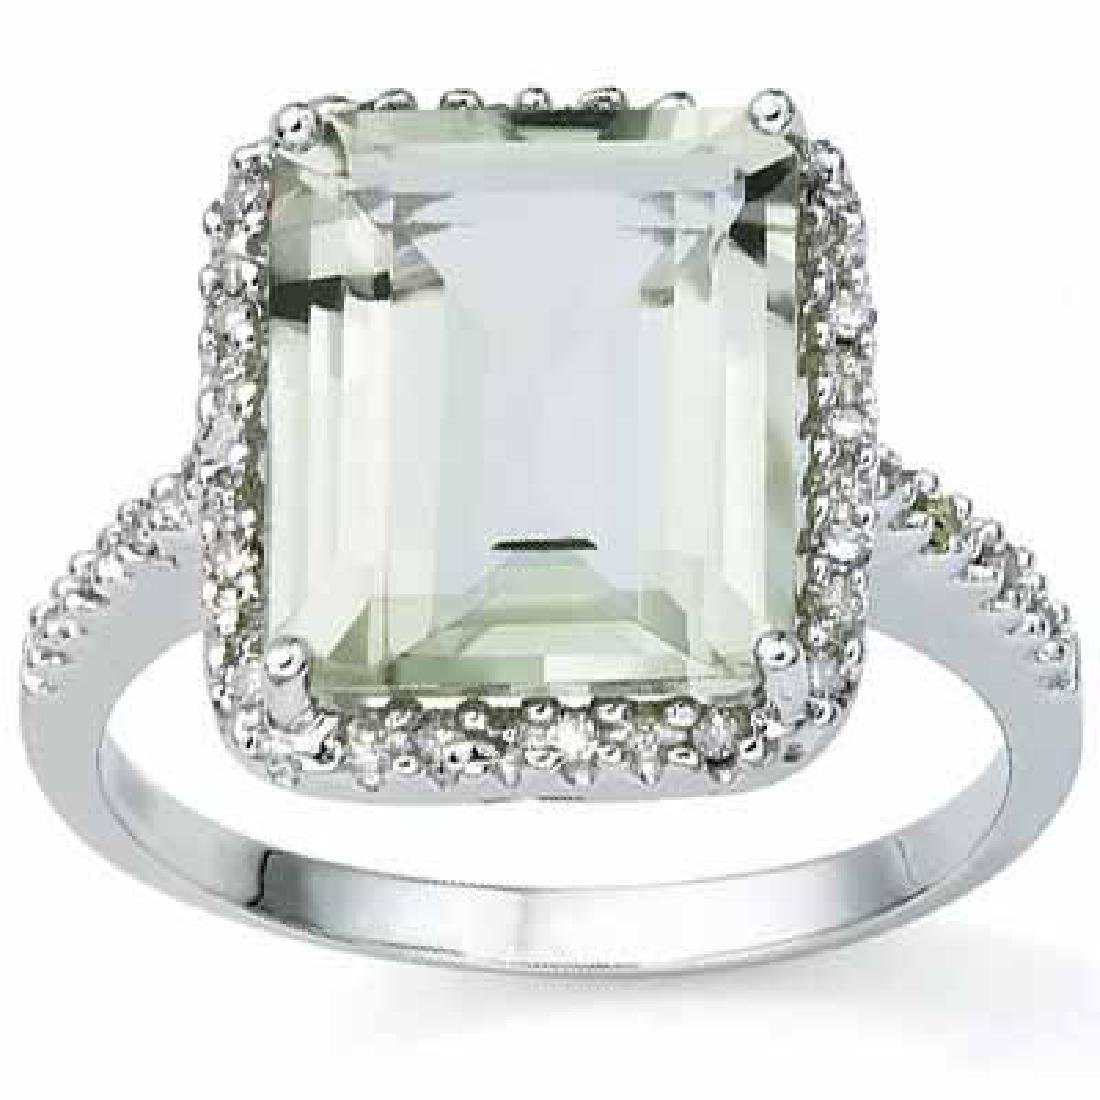 6.06 CARAT TW (3 PCS) GREEN AMETHYST & GENUINE DIAMOND